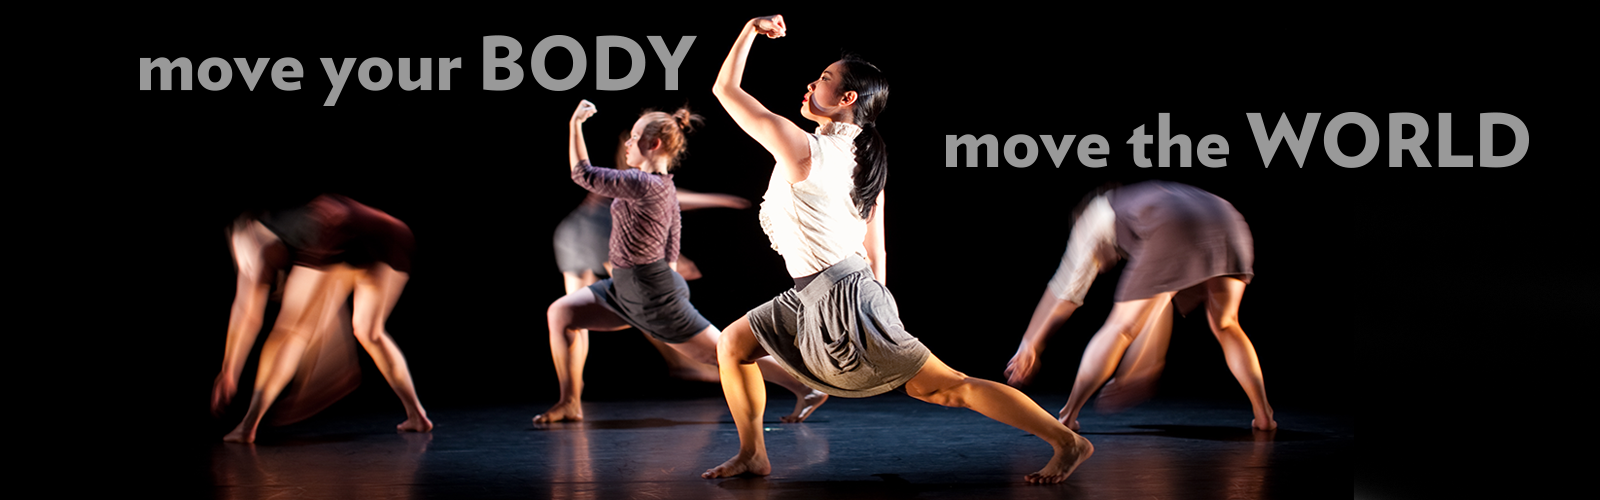 Photo of dancers on a dark stage. Two dancers are in a strong lunge stance with their fists in the air. Text on the image says move your body move the world